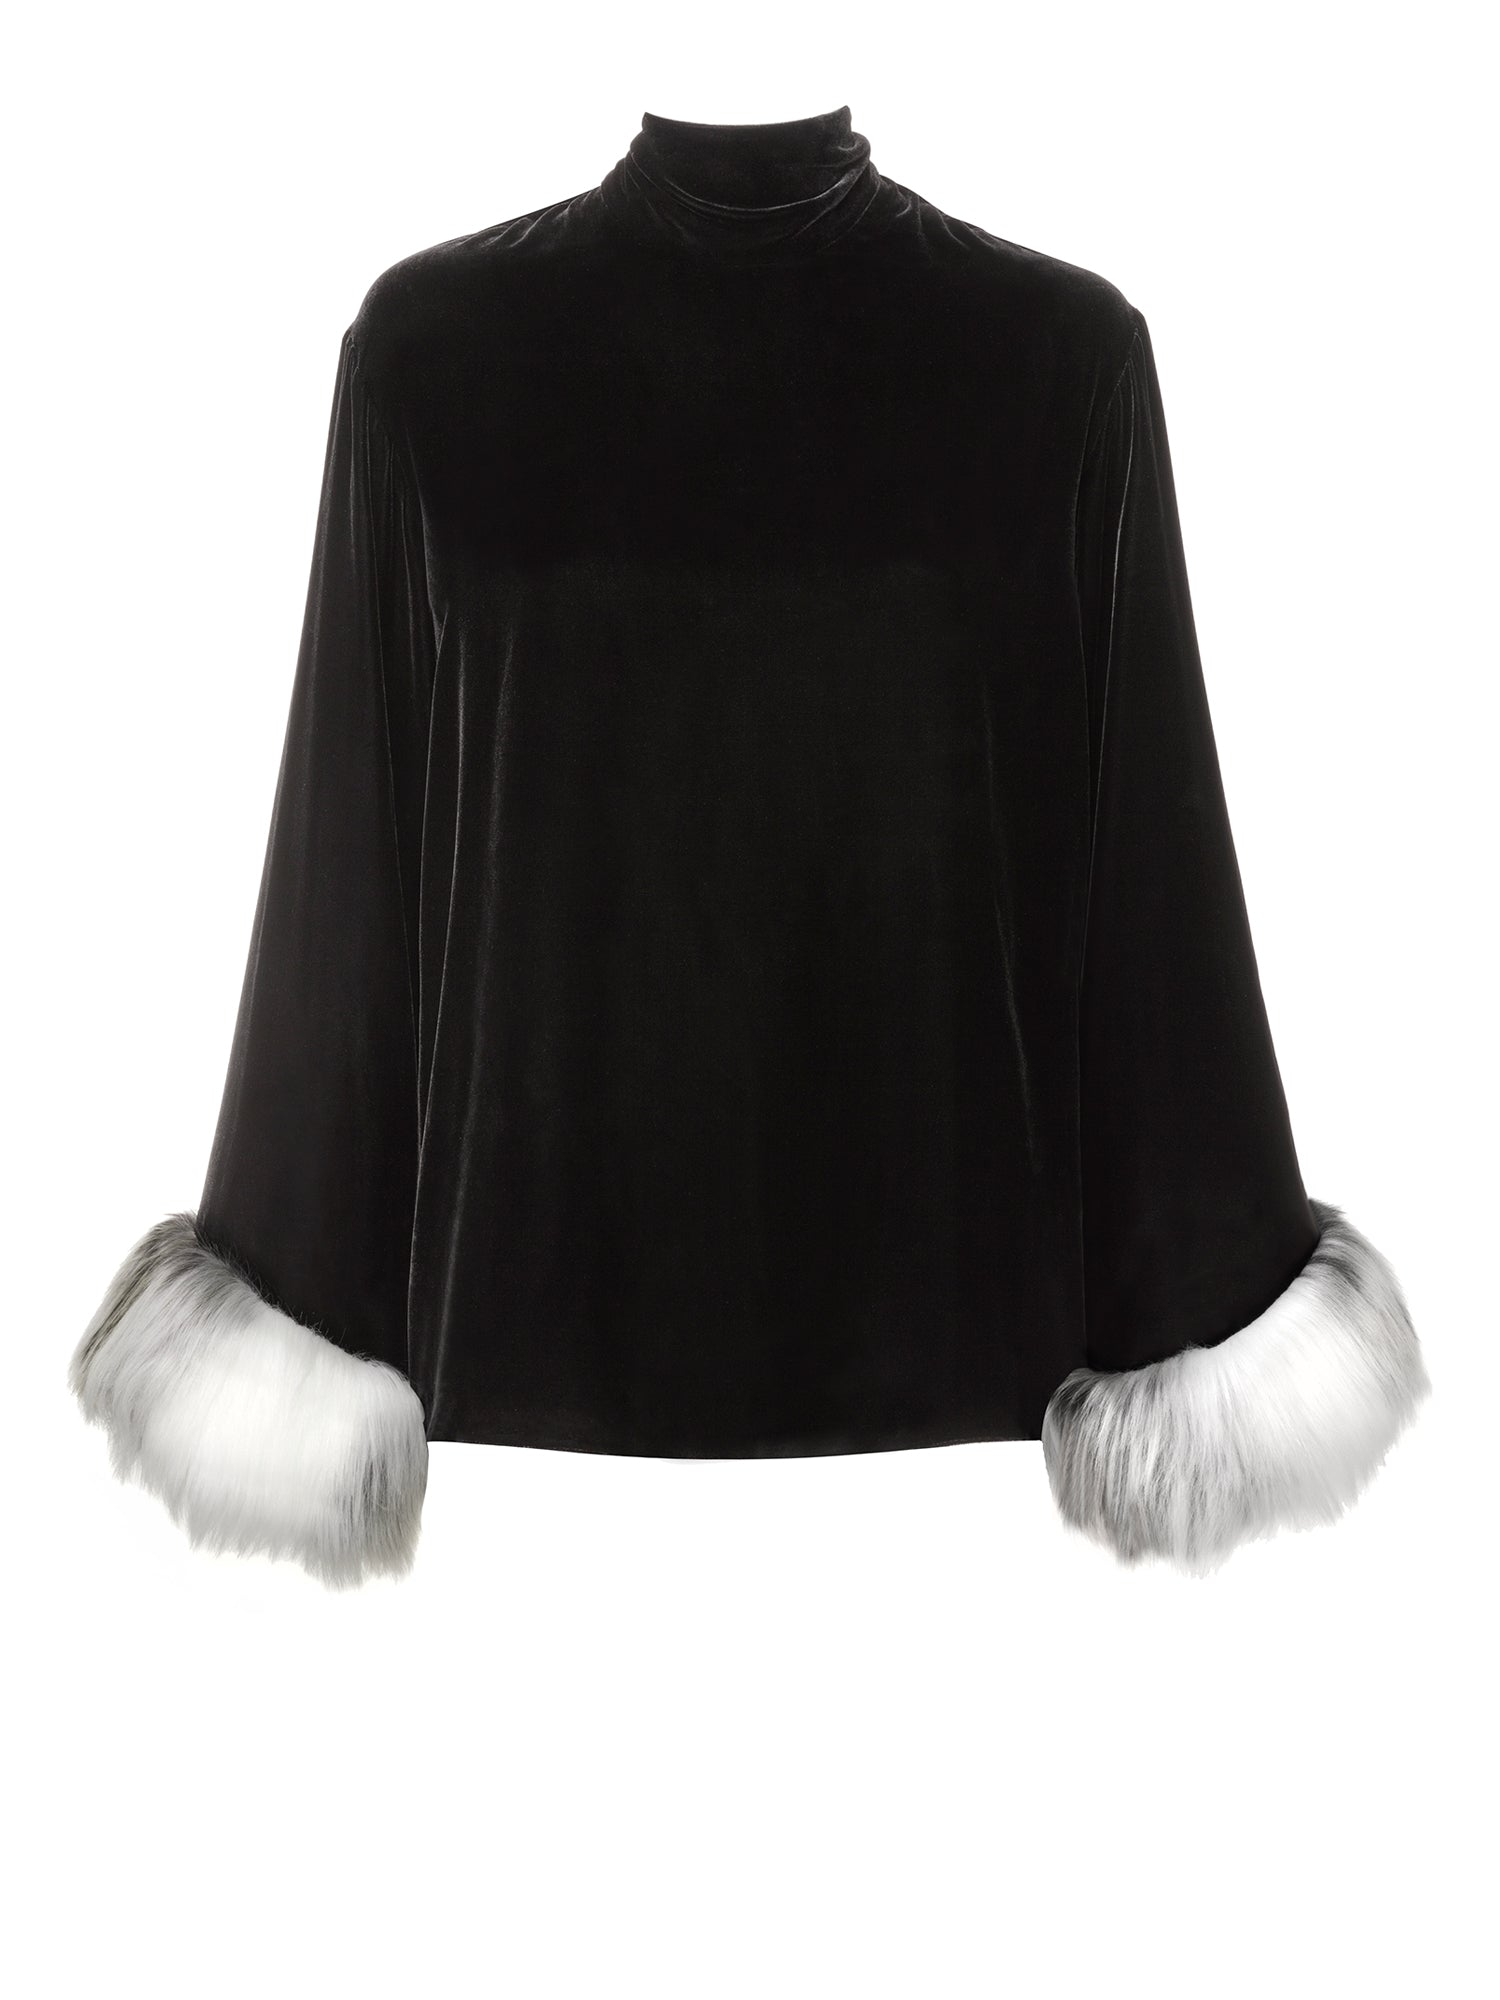 A Packshot Of Marei1998 Heliconia Velvet Top In Black Color. Made From Lustrous Black Velvet, It Is Designed For A Loose fit. Bell Sleeves, Trimmed With Faux Fur, Create A Contemporary Vintage Look. Front View.